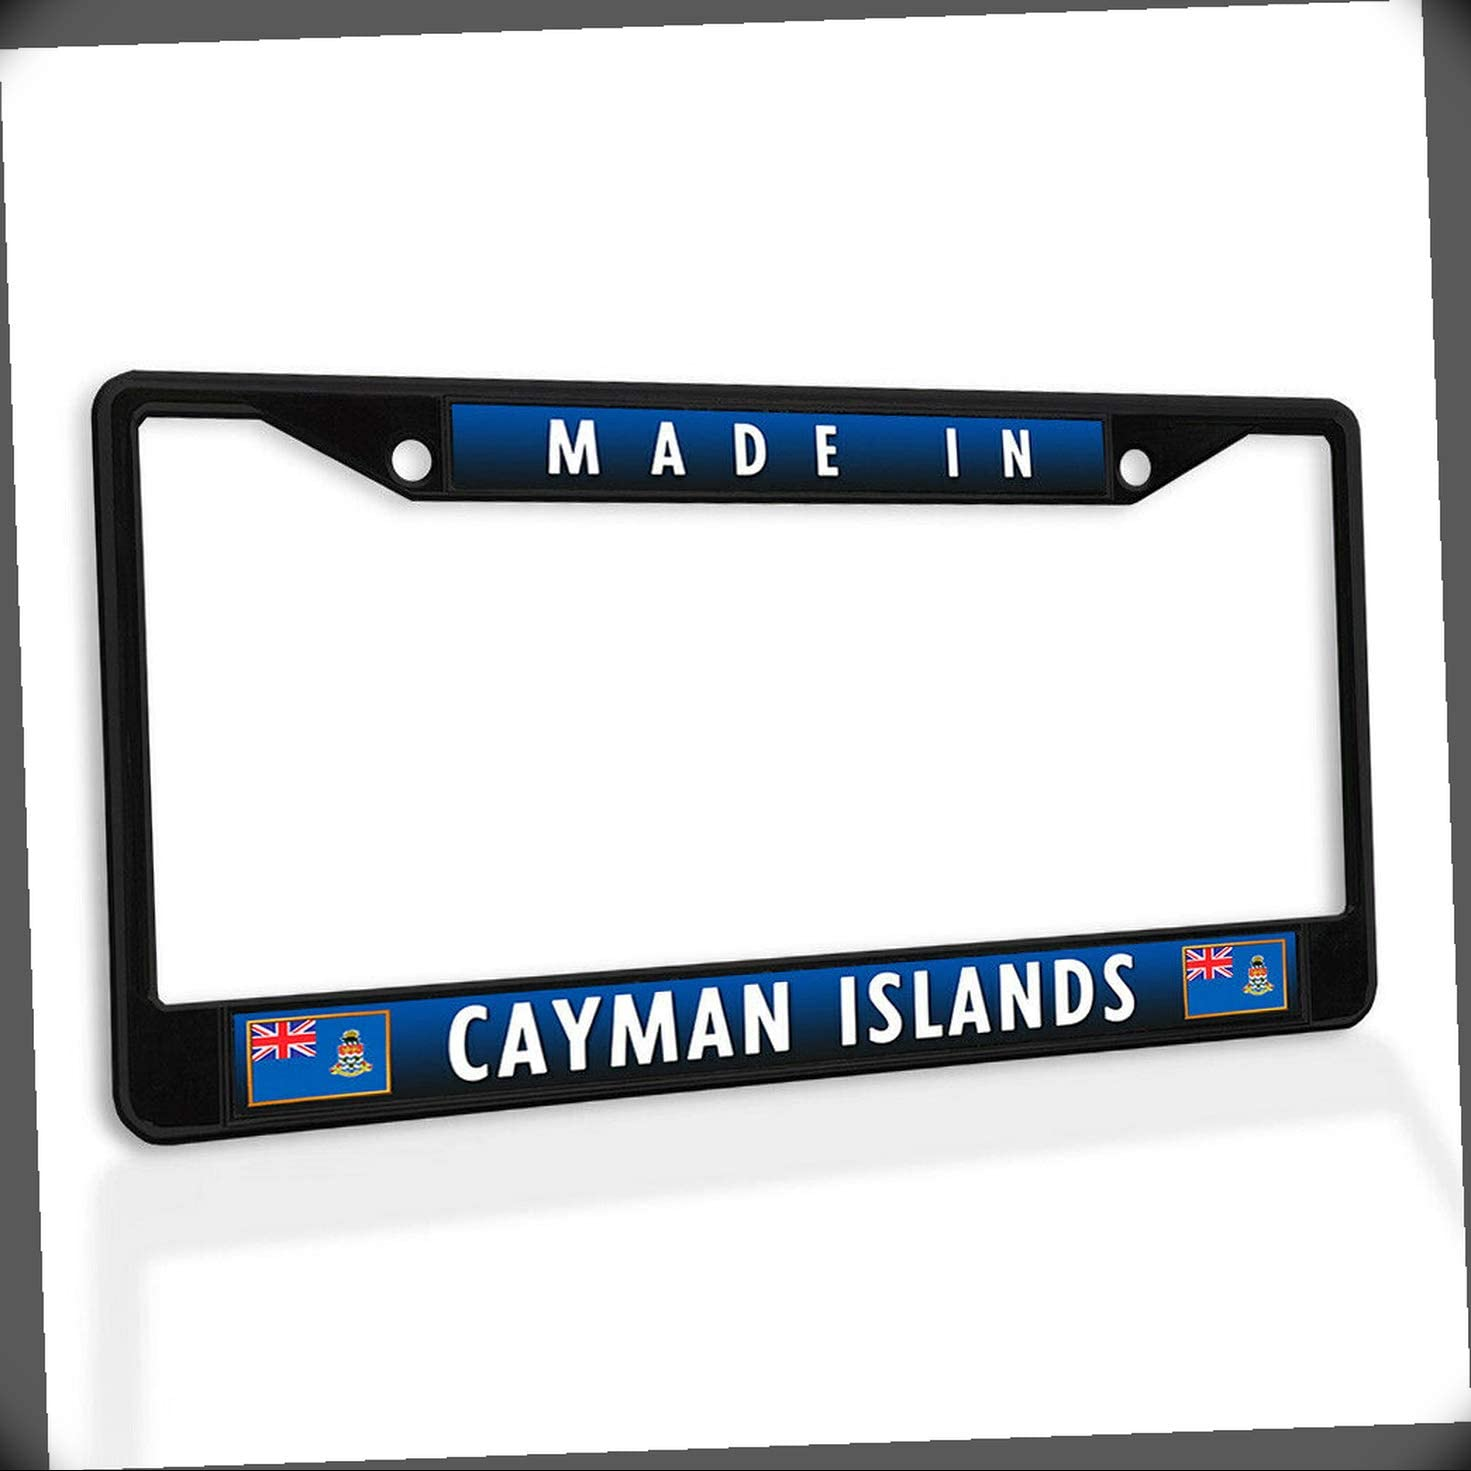 lowest price New License Plate Frame Made Super sale period limited in Car Islands Insert Metal Cayman